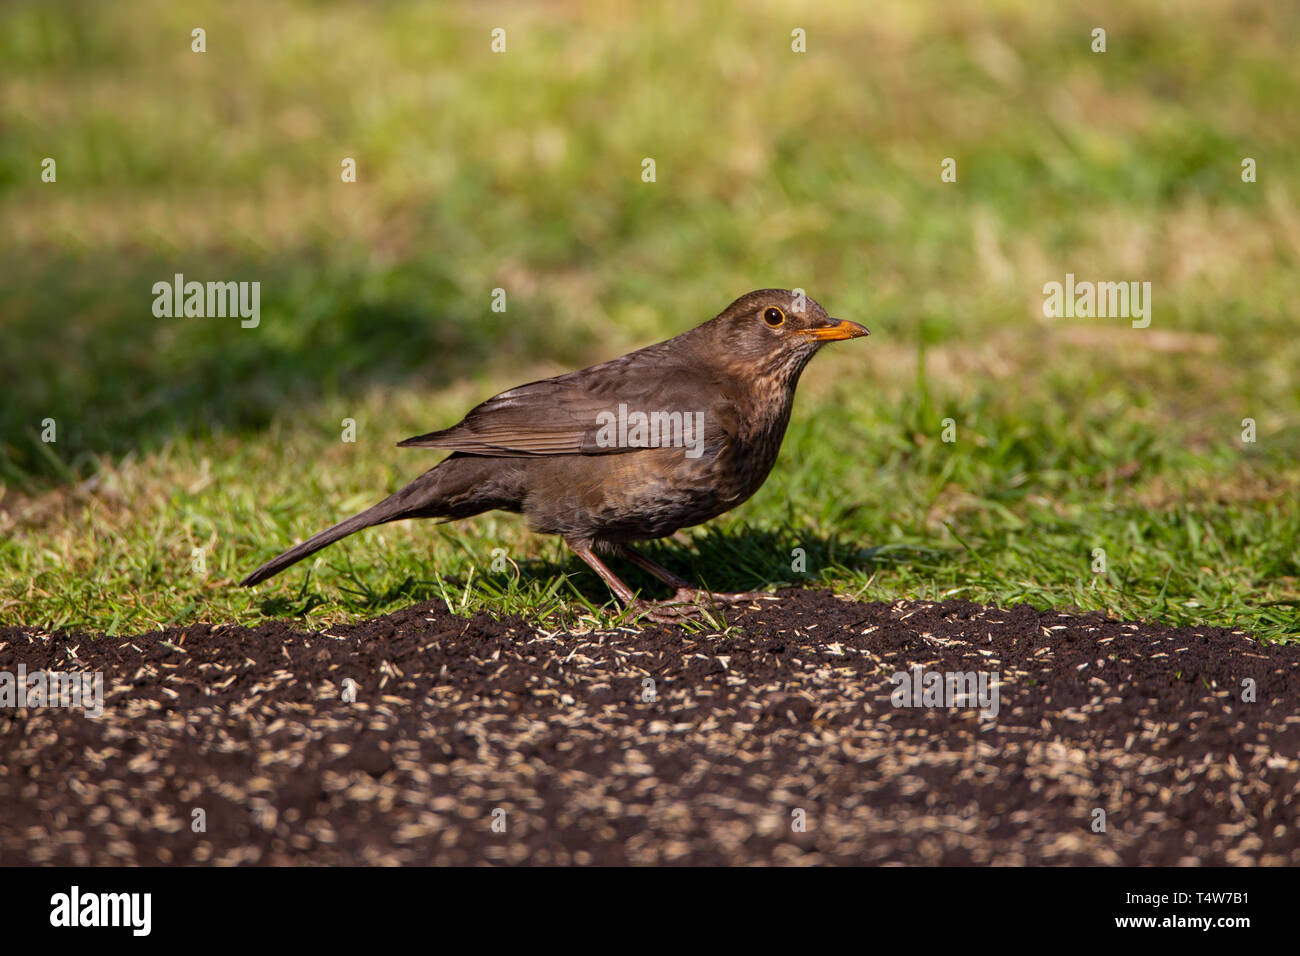 Female Blackbird Turdus merula in profile feeding opportunistically on grass seed from an area of lawn that has been re-seeded - Stock Image